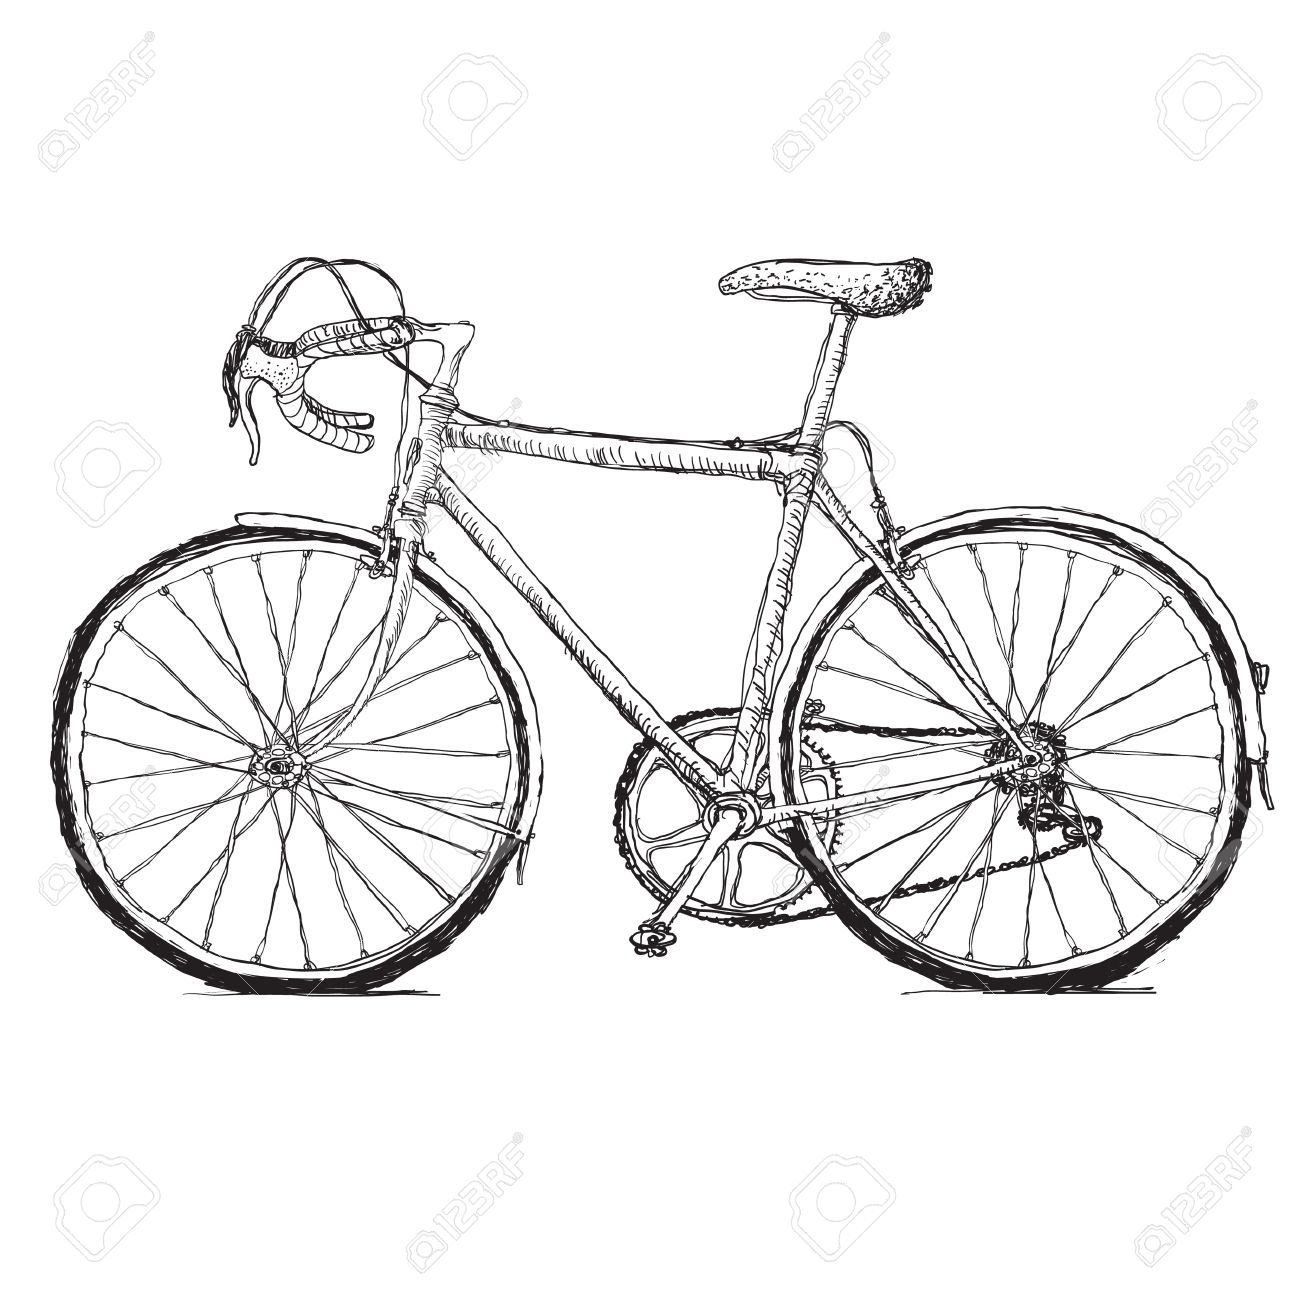 1300x1300 Vintage Road Bicycle Hand Drawn Illustration Royalty Free Cliparts